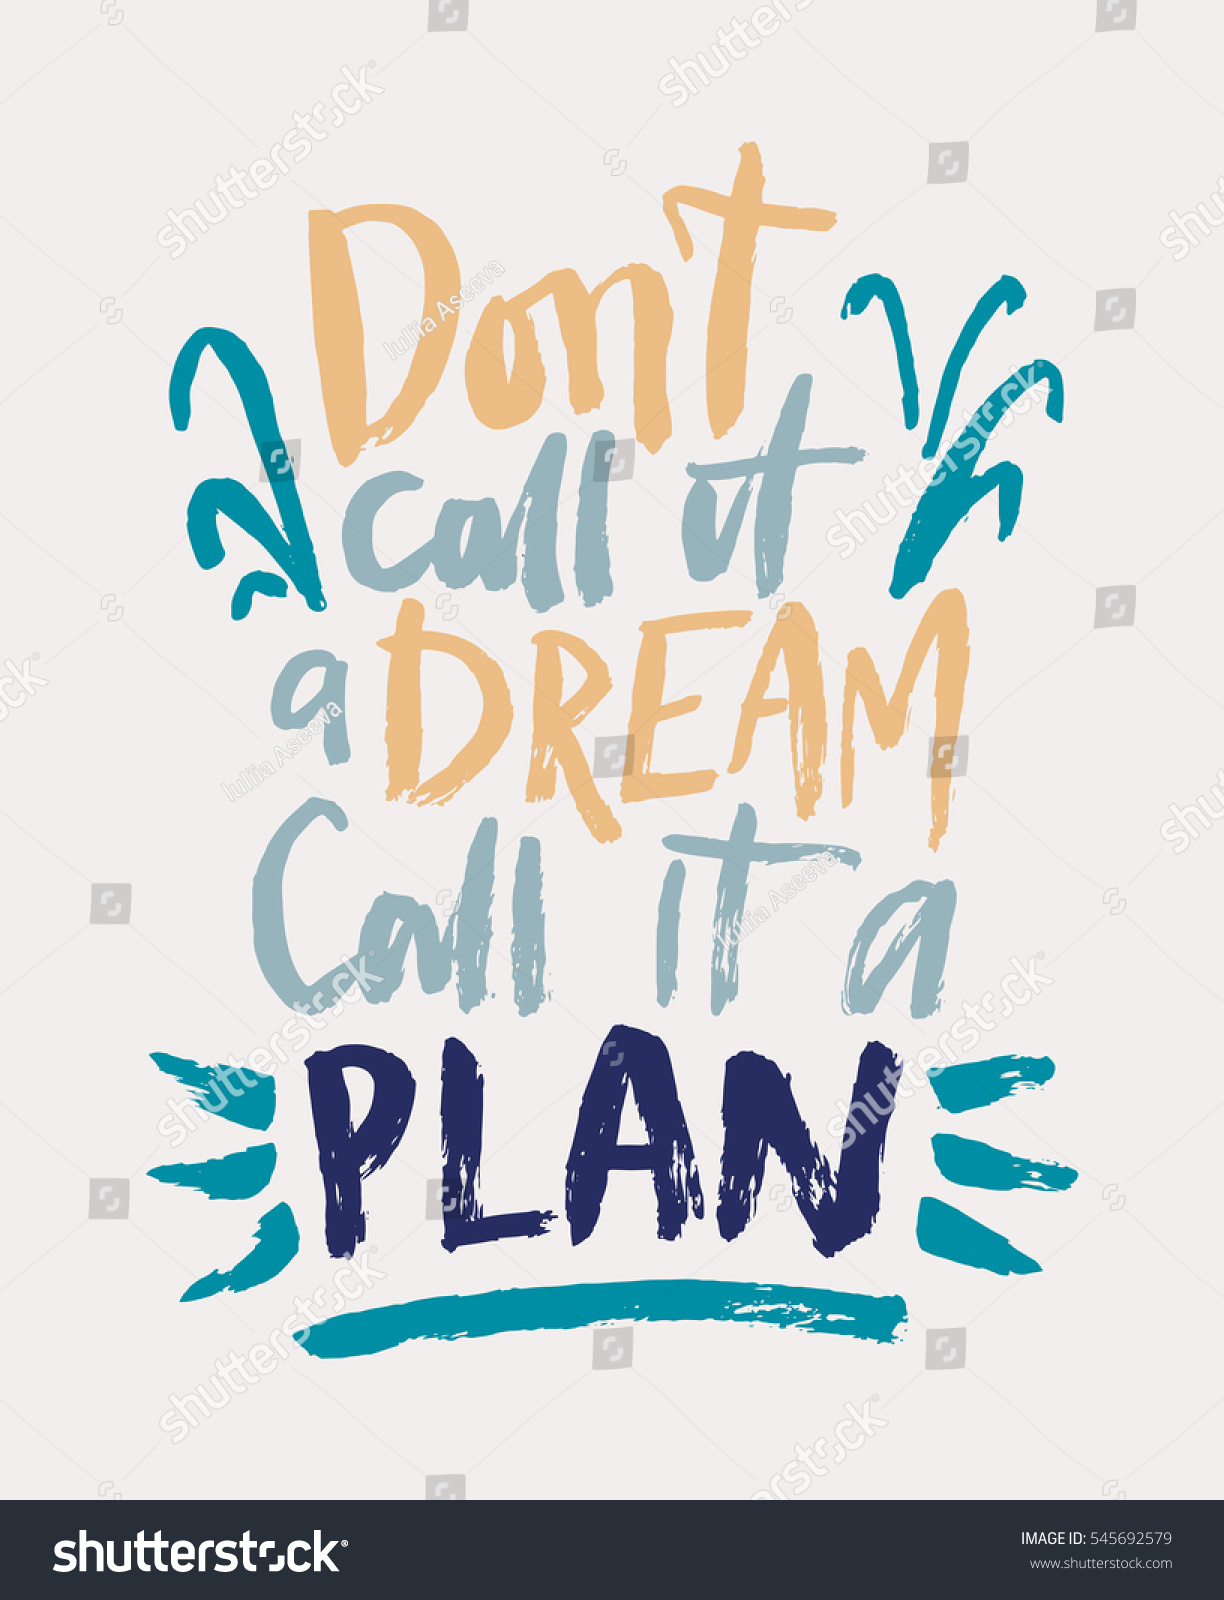 Don't call it a dream call it a plan Motivational quote lettering hand drawn with brush vector template for poster or banner colorful design Isolated on background